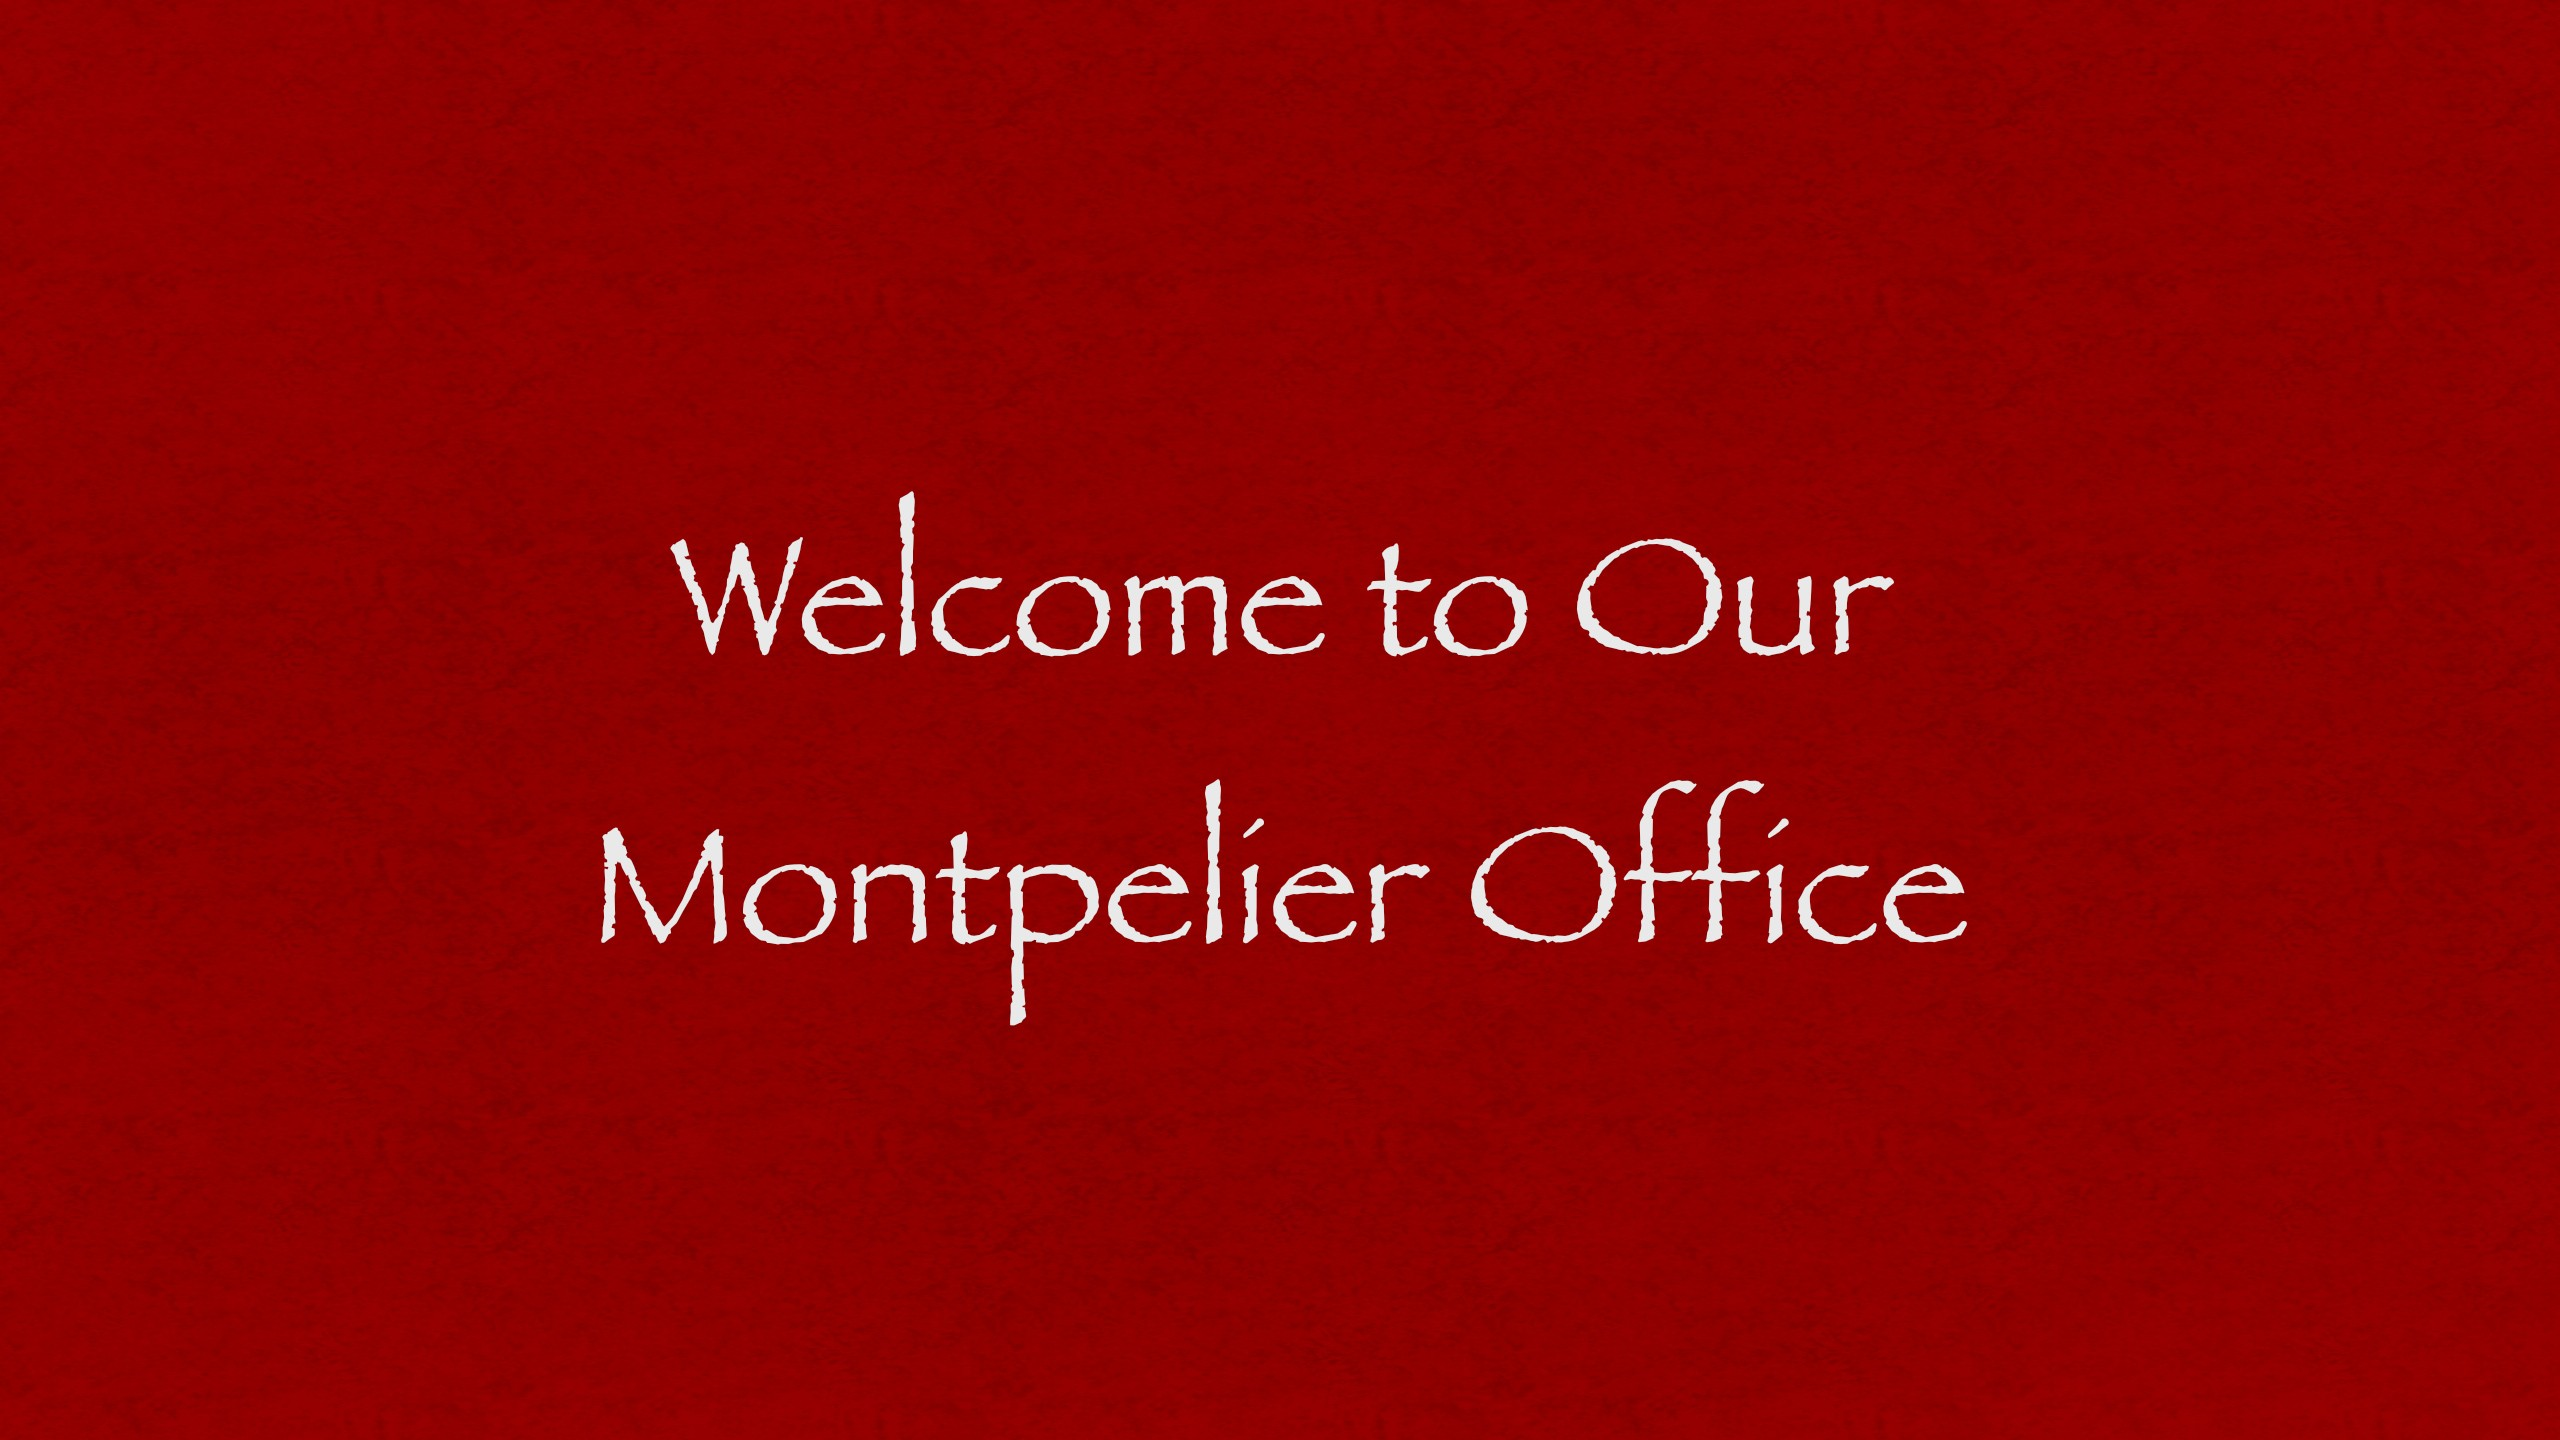 Welcome To Our Montpelier Office